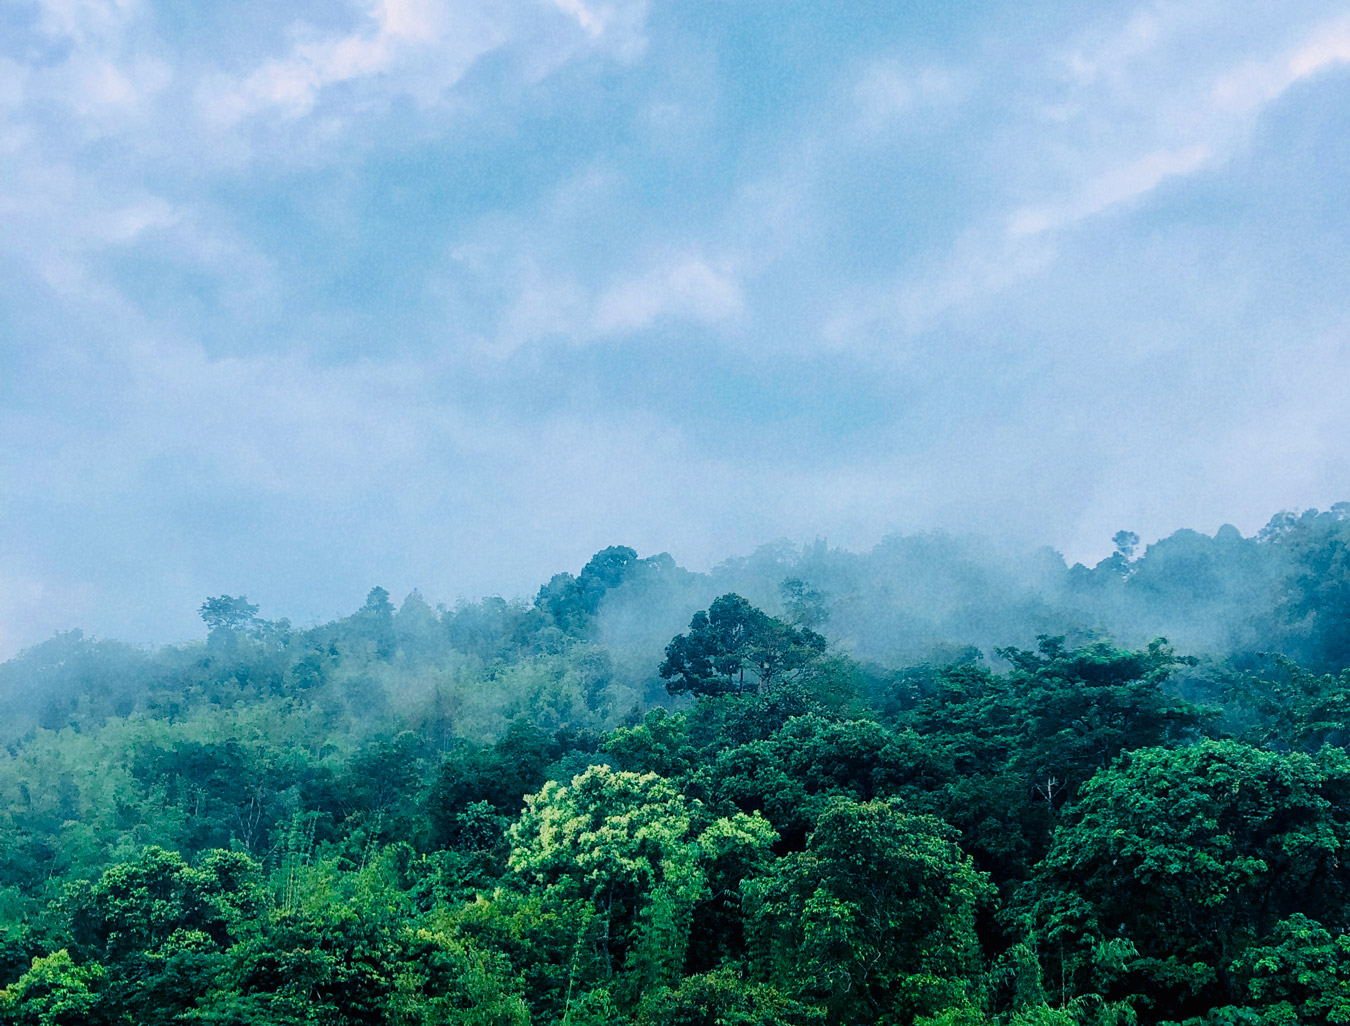 Views at Fraser's hill, forests and sky, Highlands, highland, Pahang, Bukit Frasers